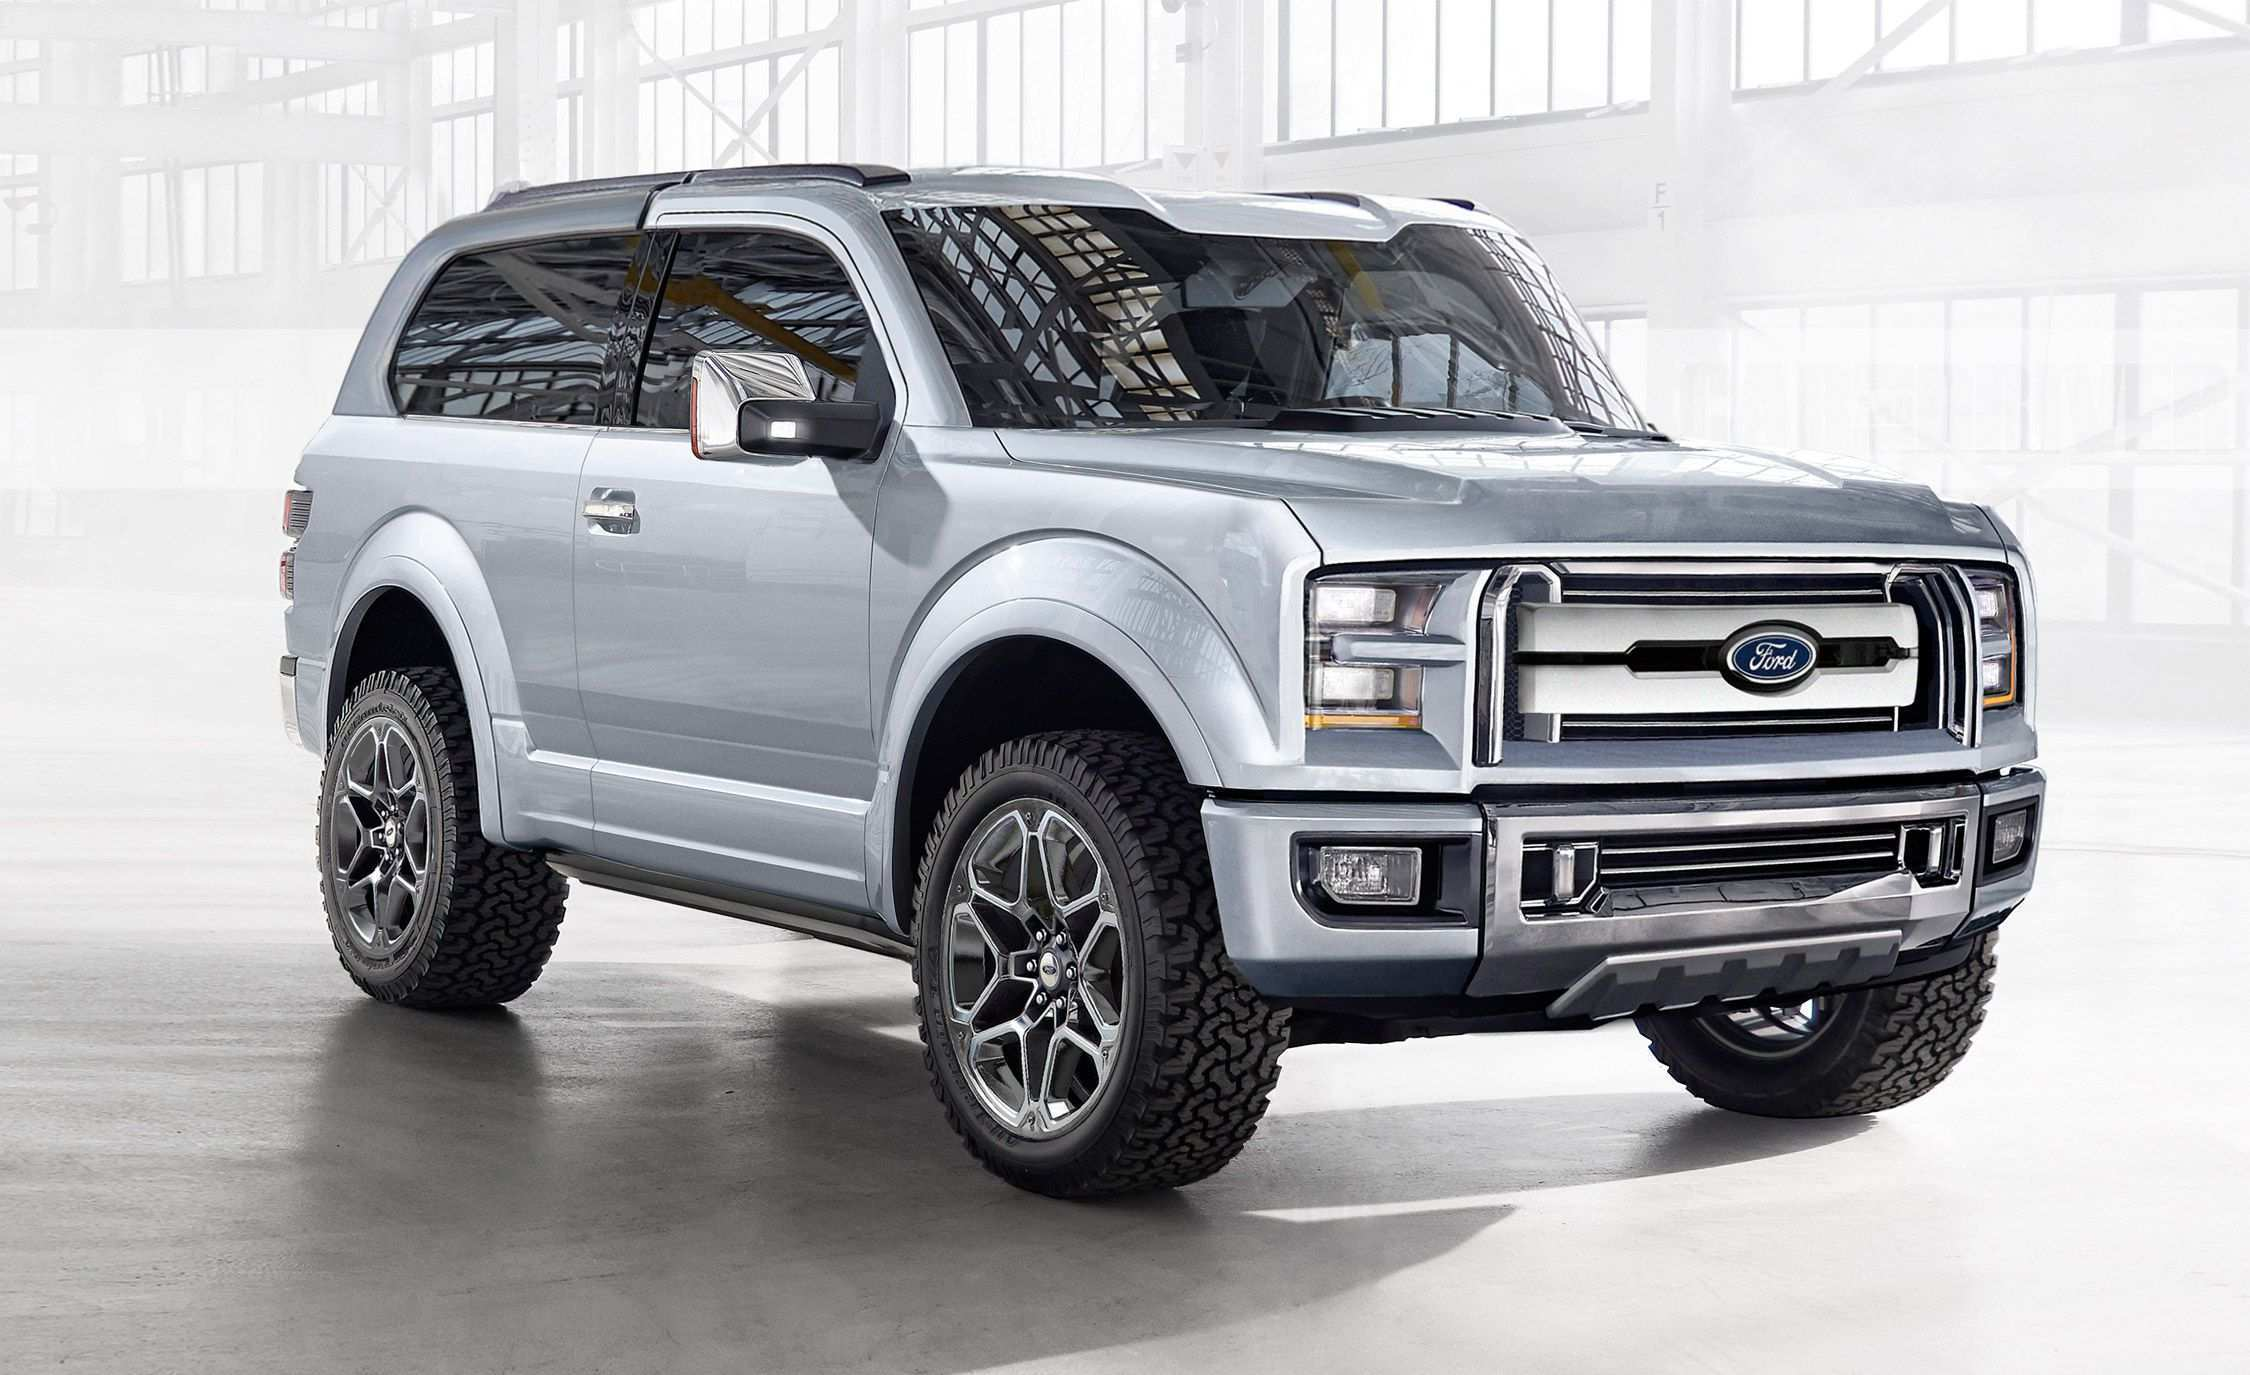 88 Best Review 2020 Ford Bronco Order Configurations for 2020 Ford Bronco Order